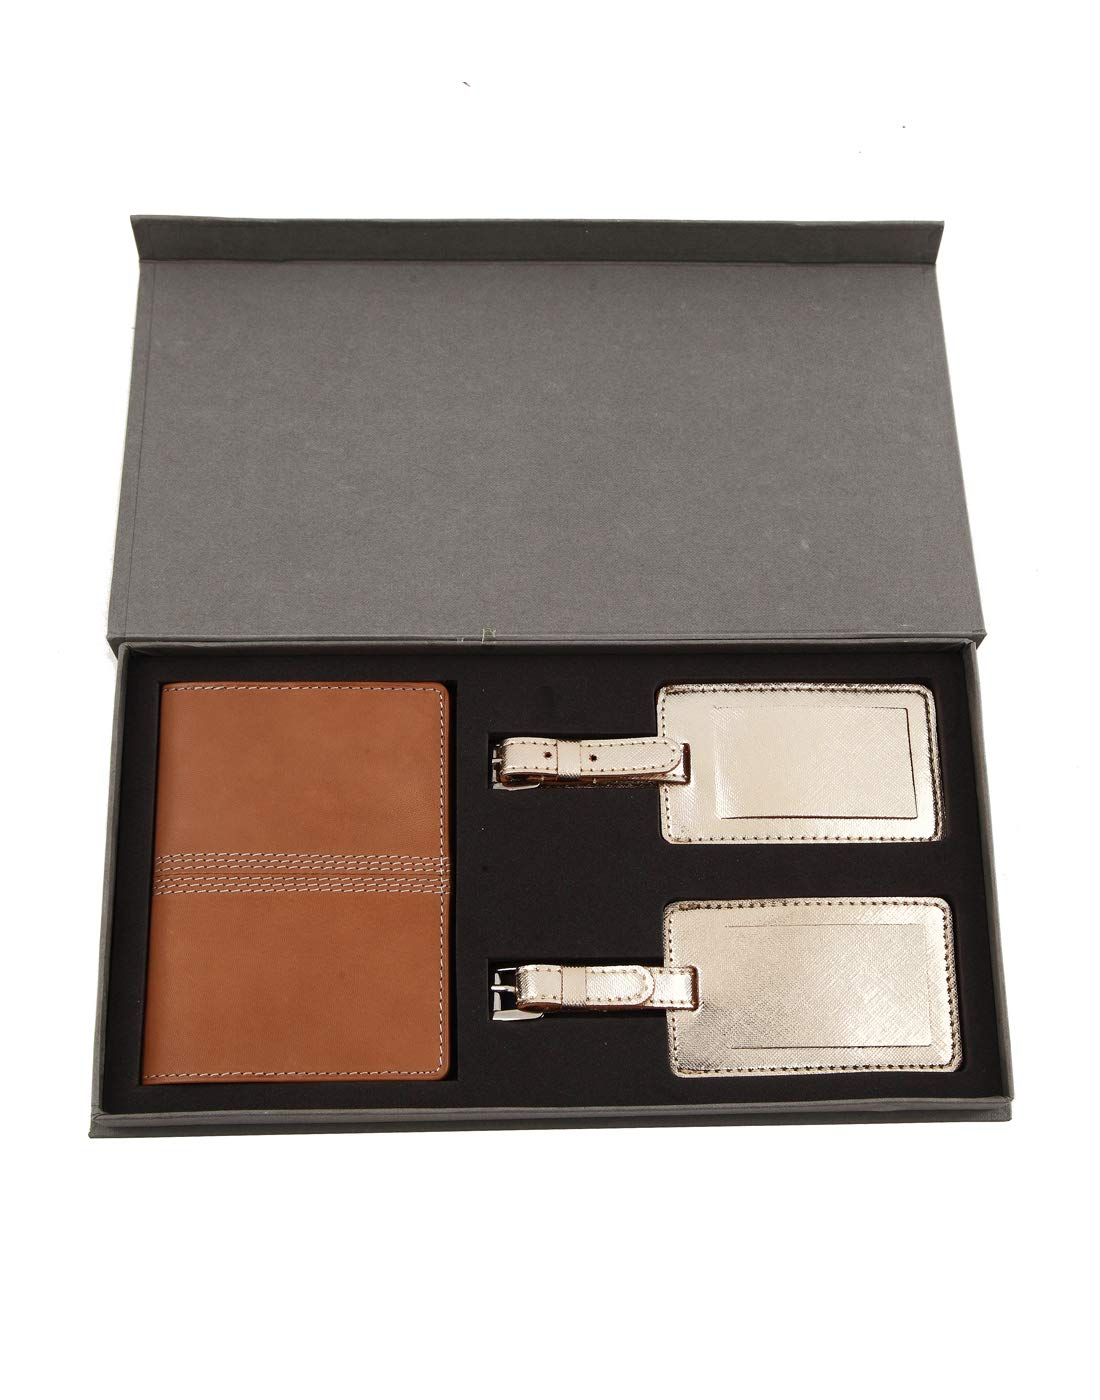 JL Collections Beige Leather Passport Holder with Gold Luggage Tag Gift Sets (Pack of 3)